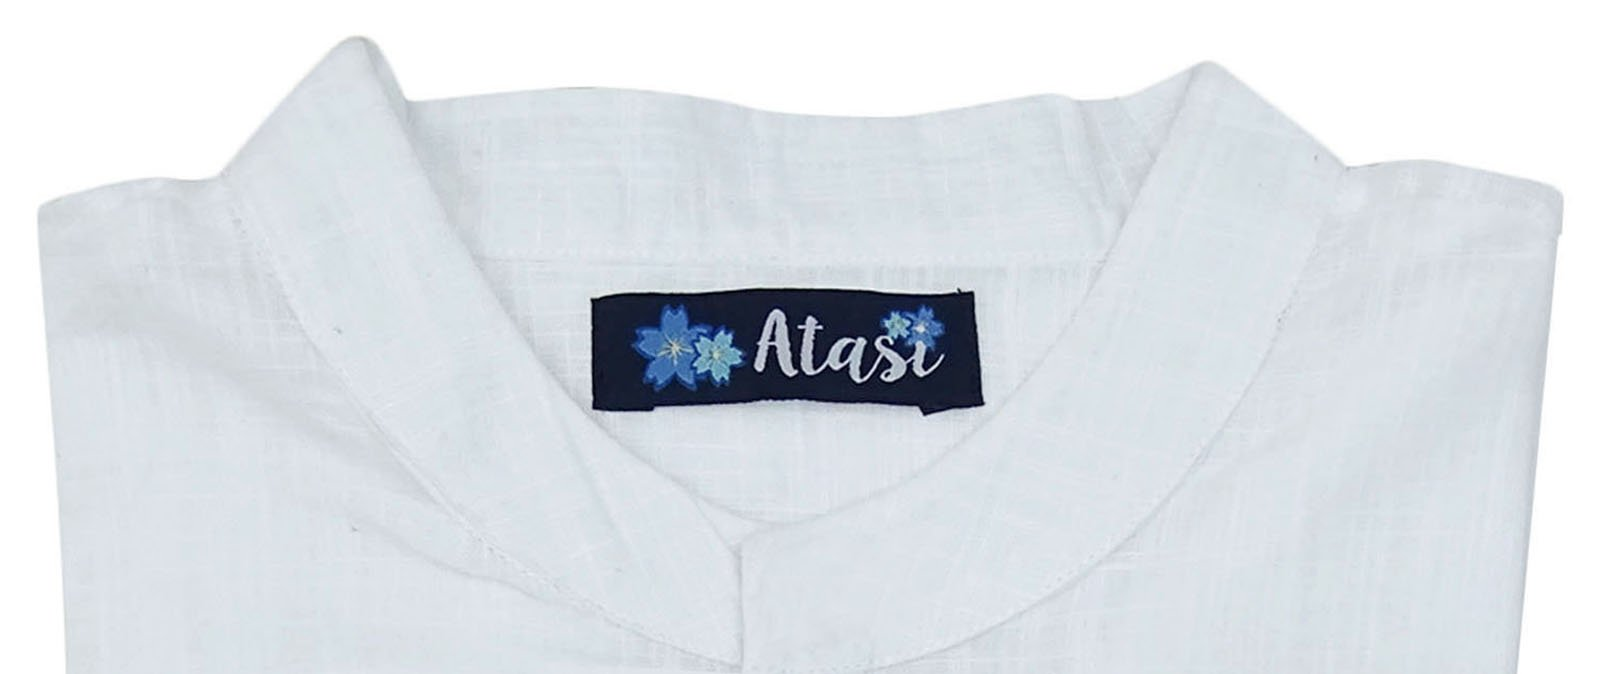 Atasi Men's Band Collar Short Kurta White Cotton Casual Tunic Shirt-Large by Atasi (Image #6)